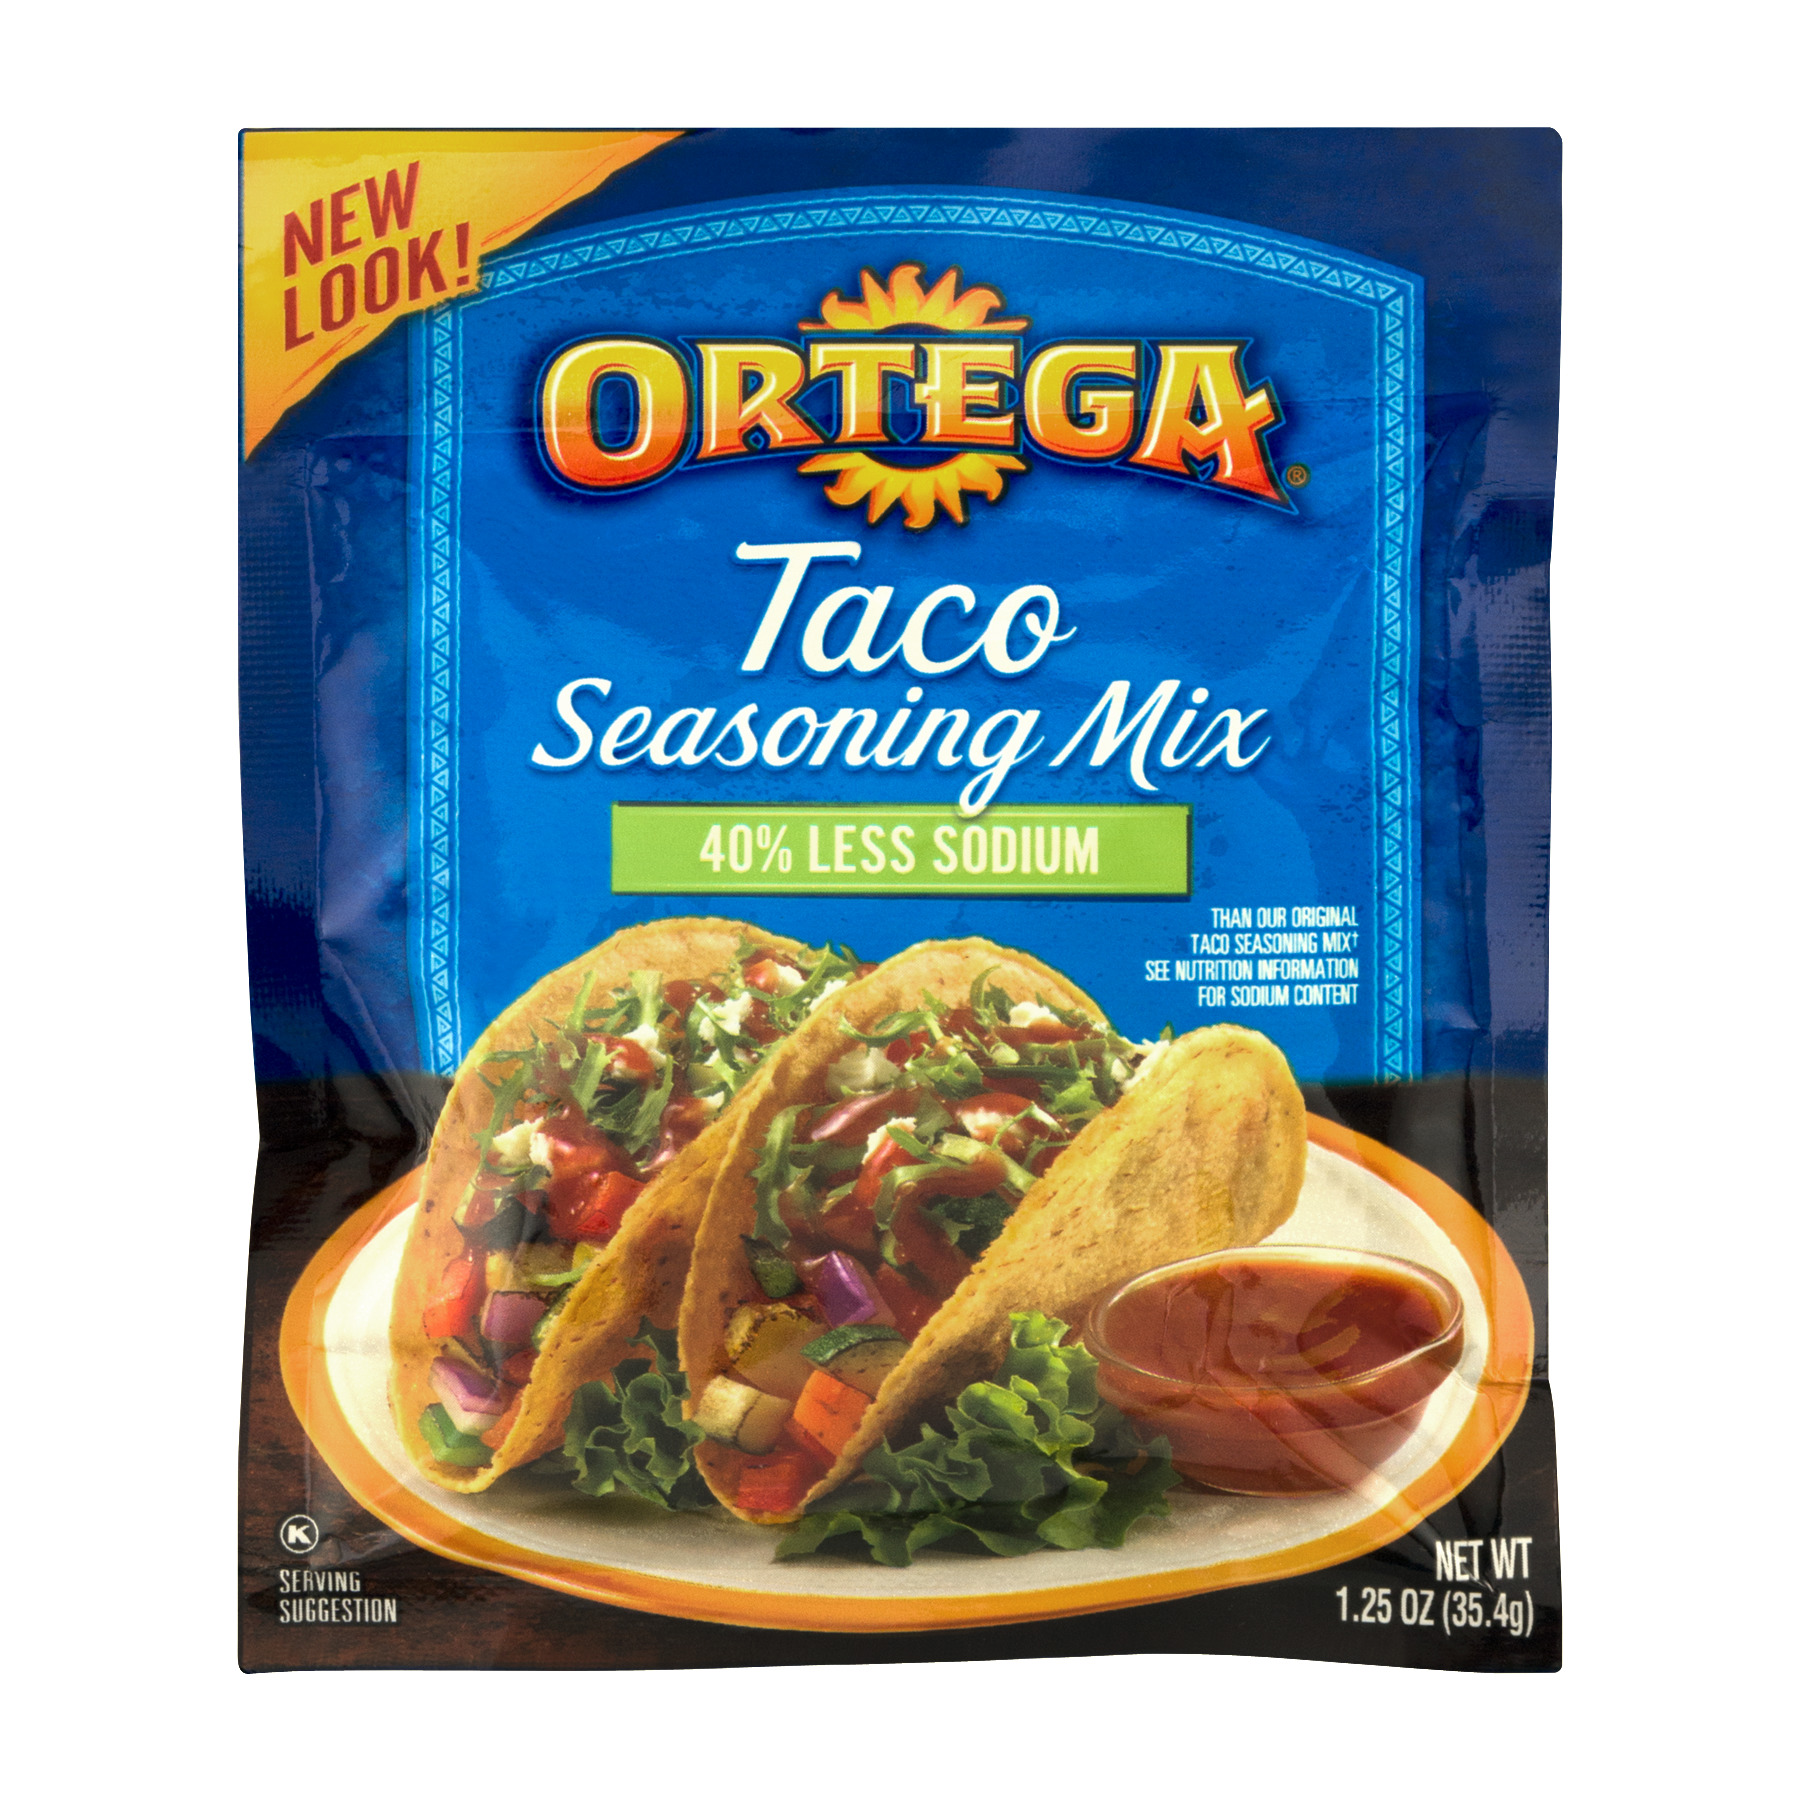 Ortega Low Sodium Taco Seasoning